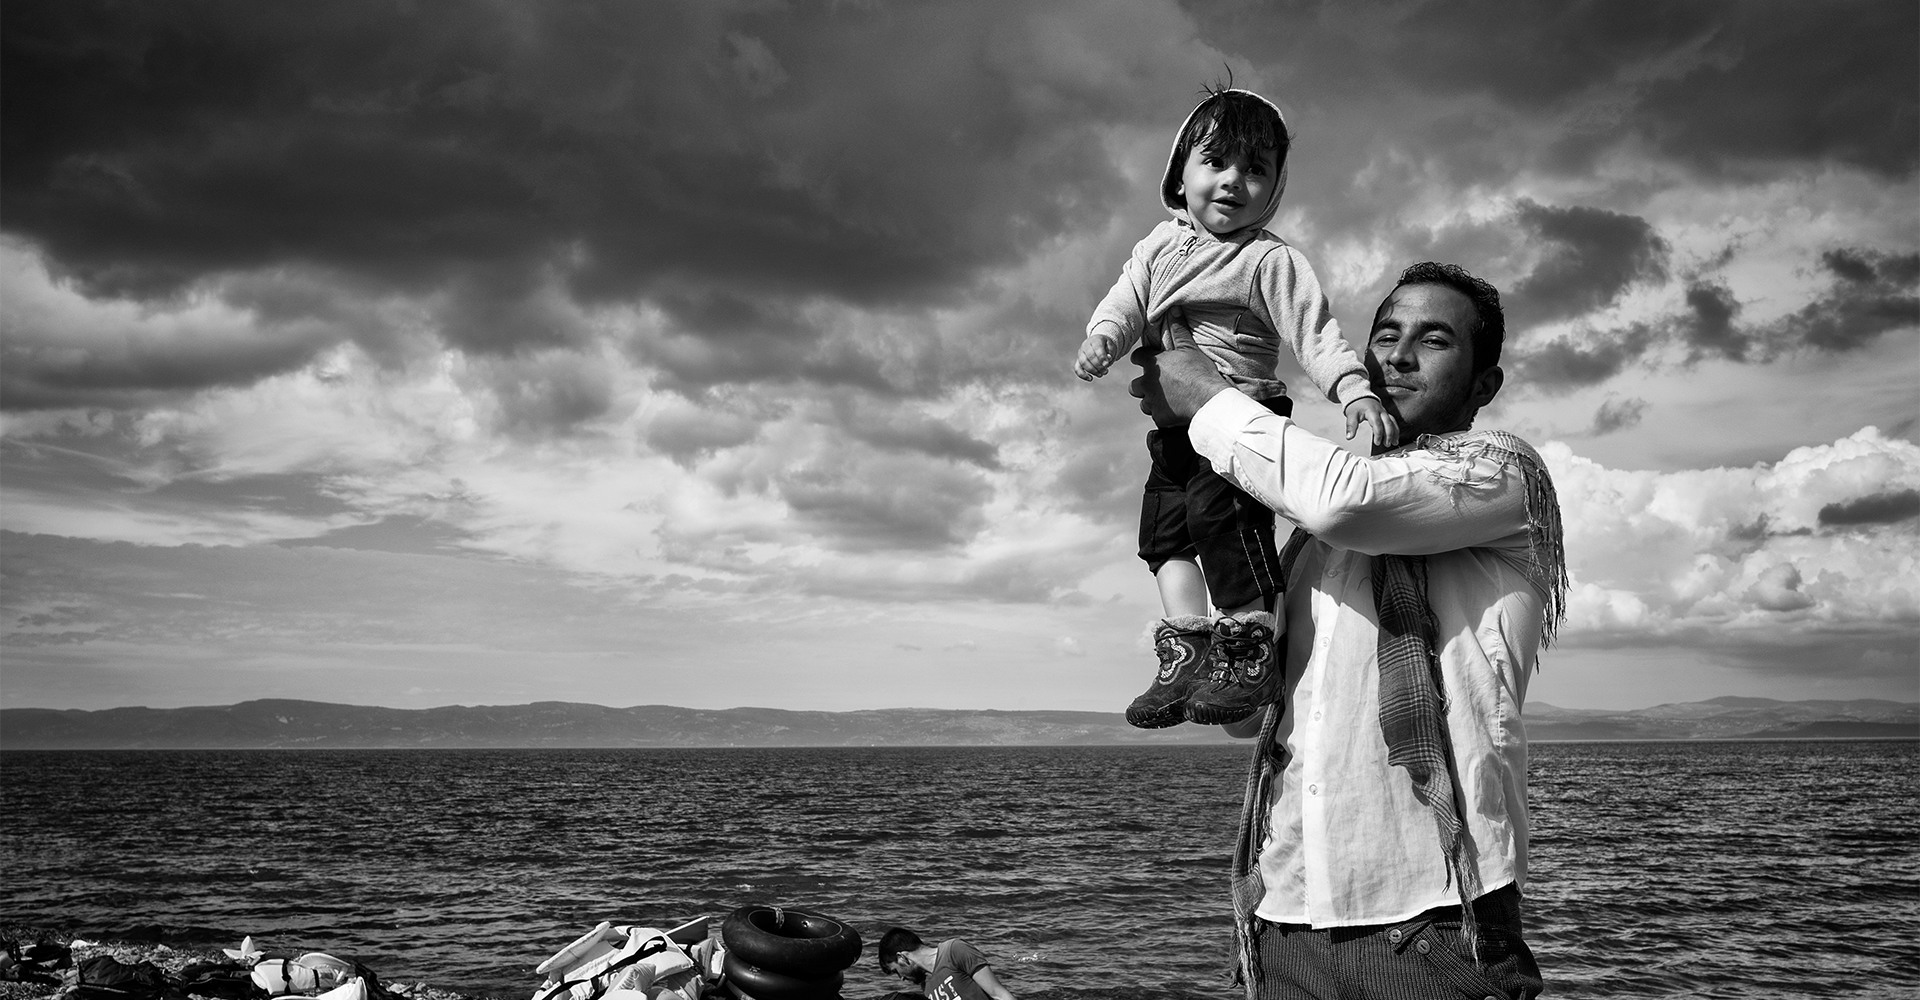 Lesbos, Greece, October 2015: A father celebrates with his child on the Greek island of Lesbos after a stormy crossing with his family over the Aegean Sea from Turkey.